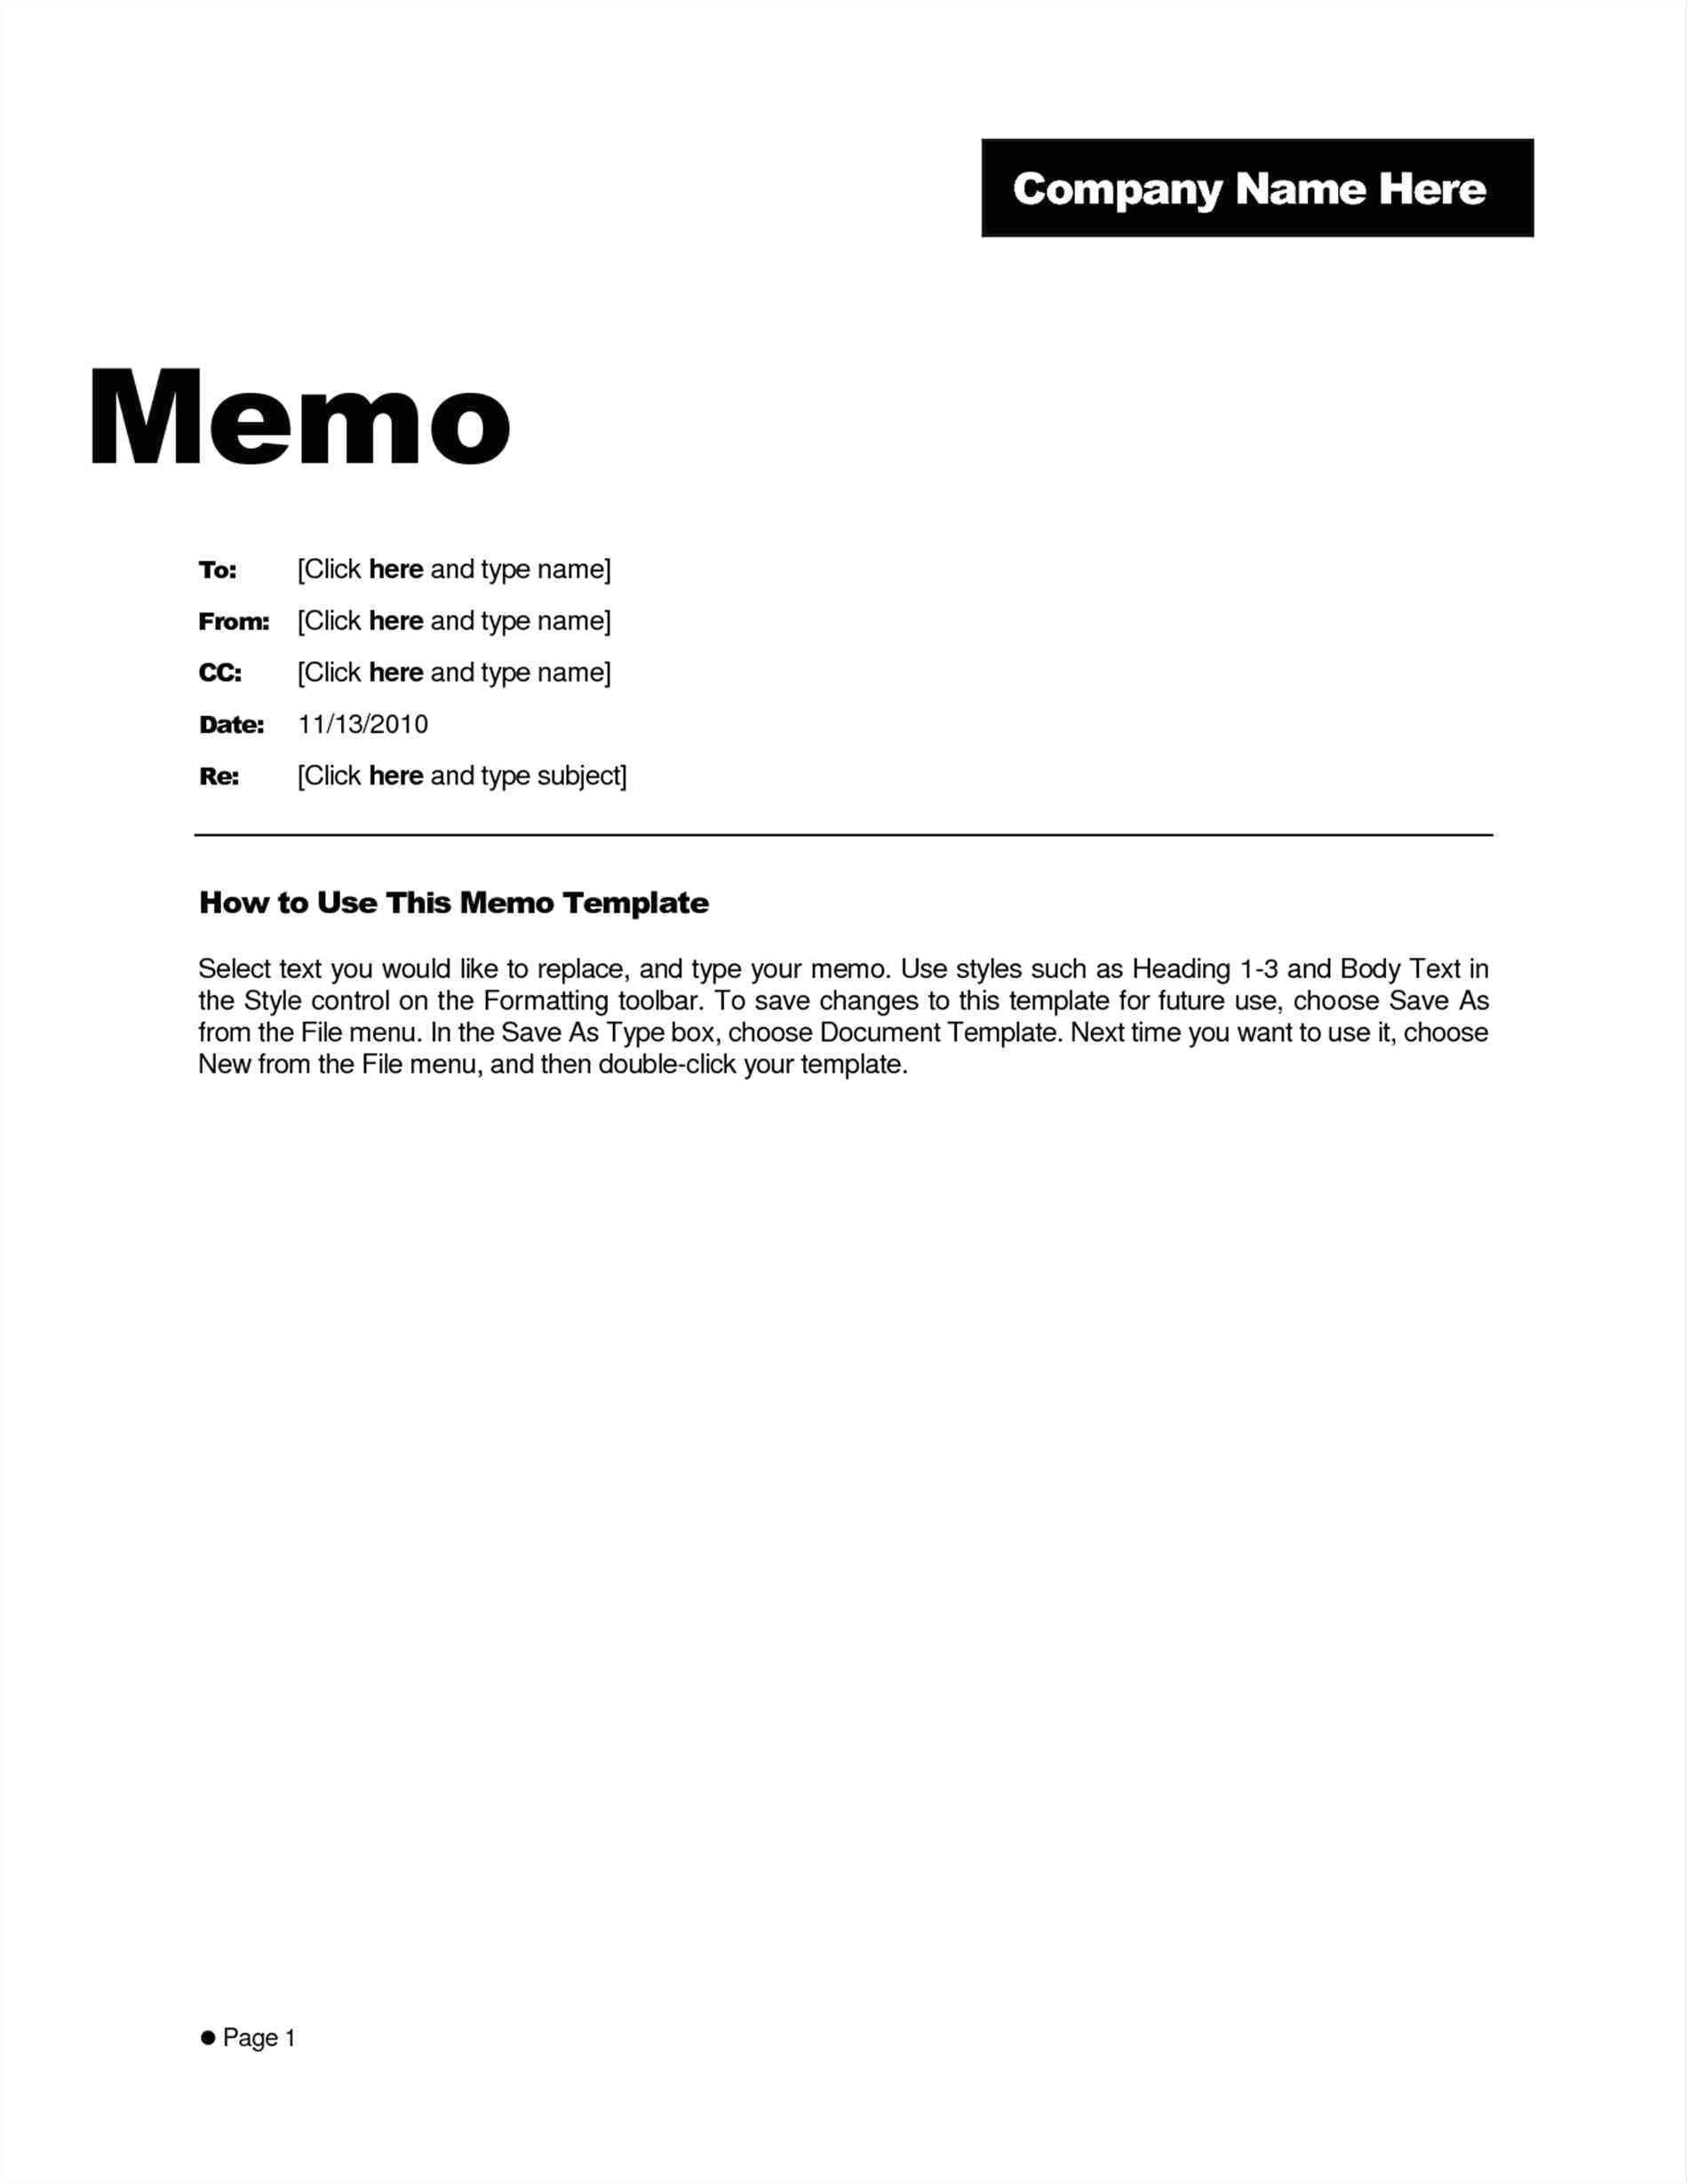 Template for Writing A Memo Blank Memo Template Mayamokacomm